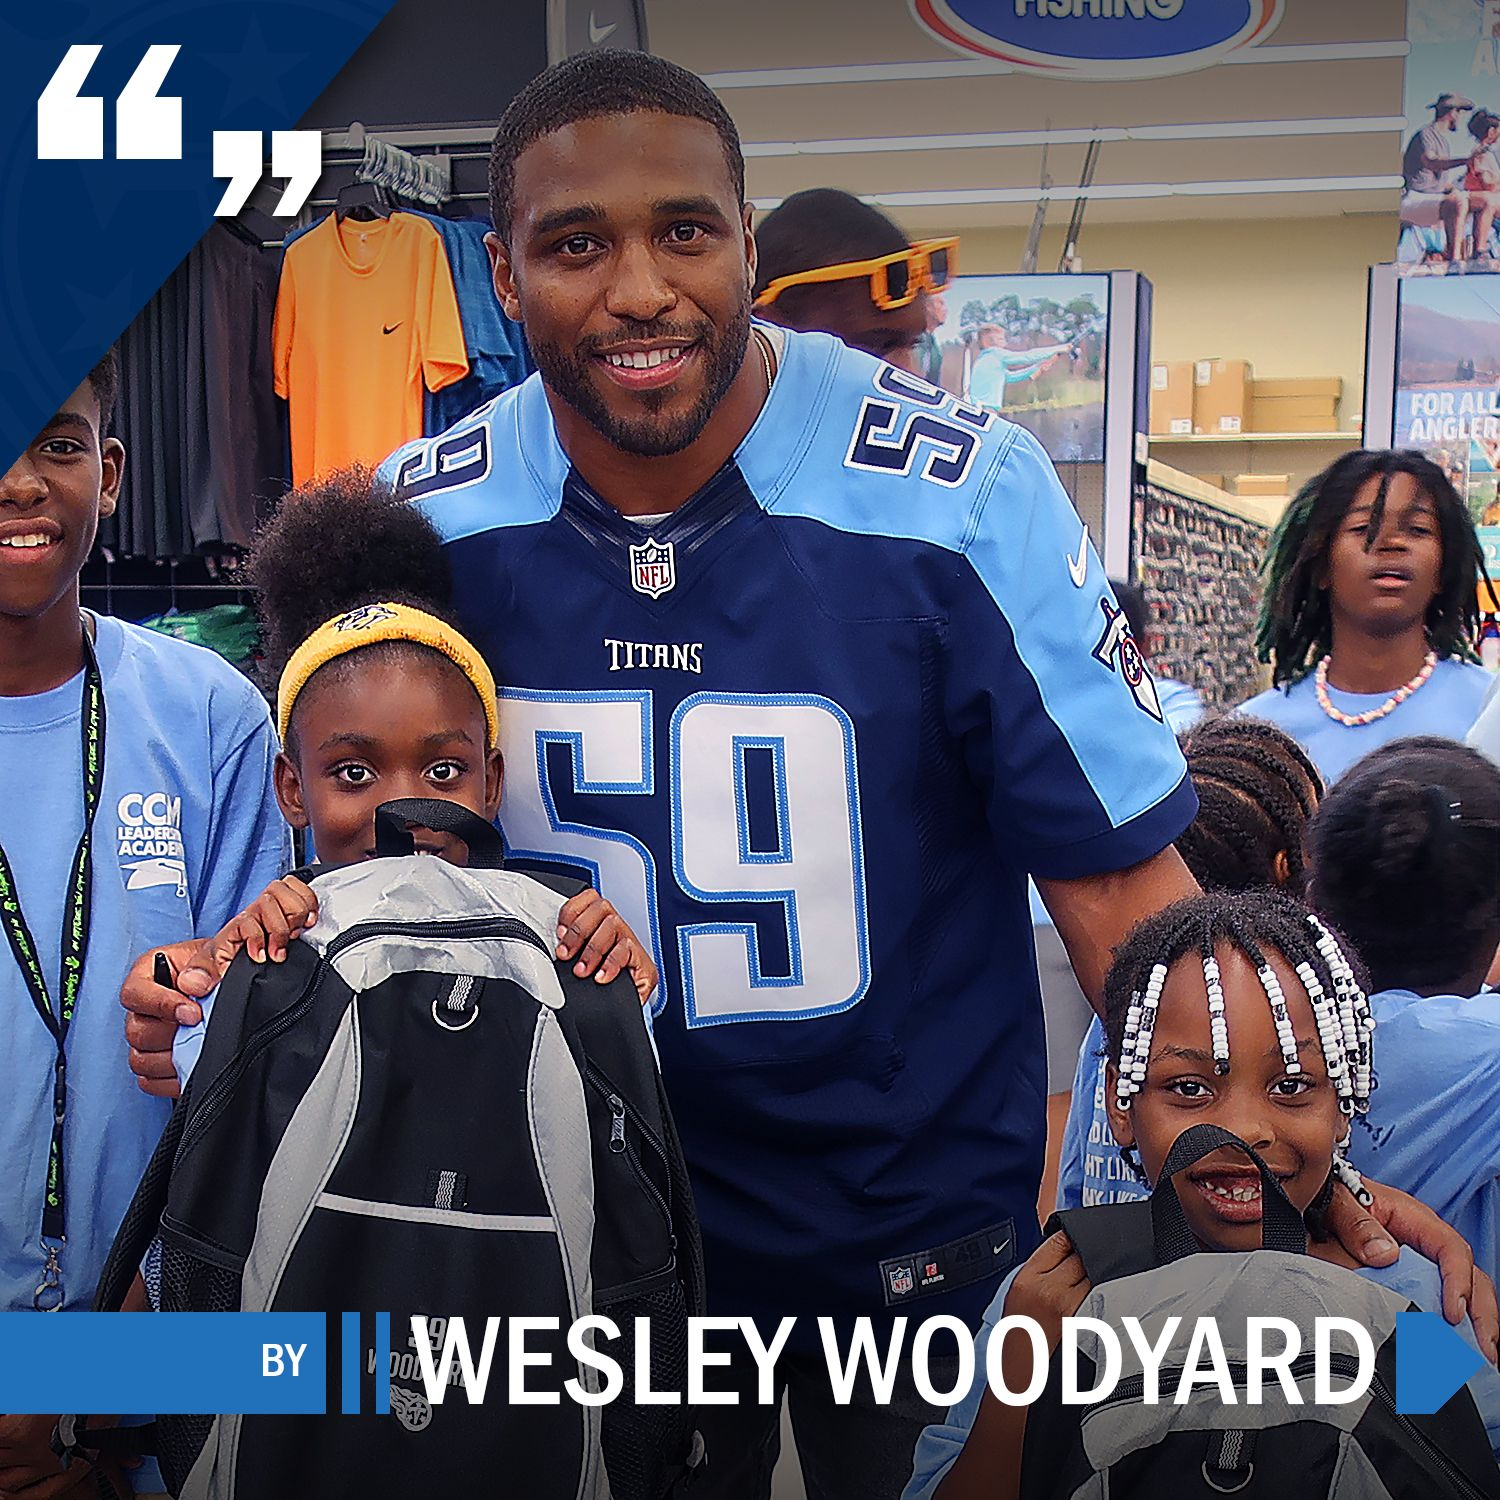 wesley-woodyard-players-1500